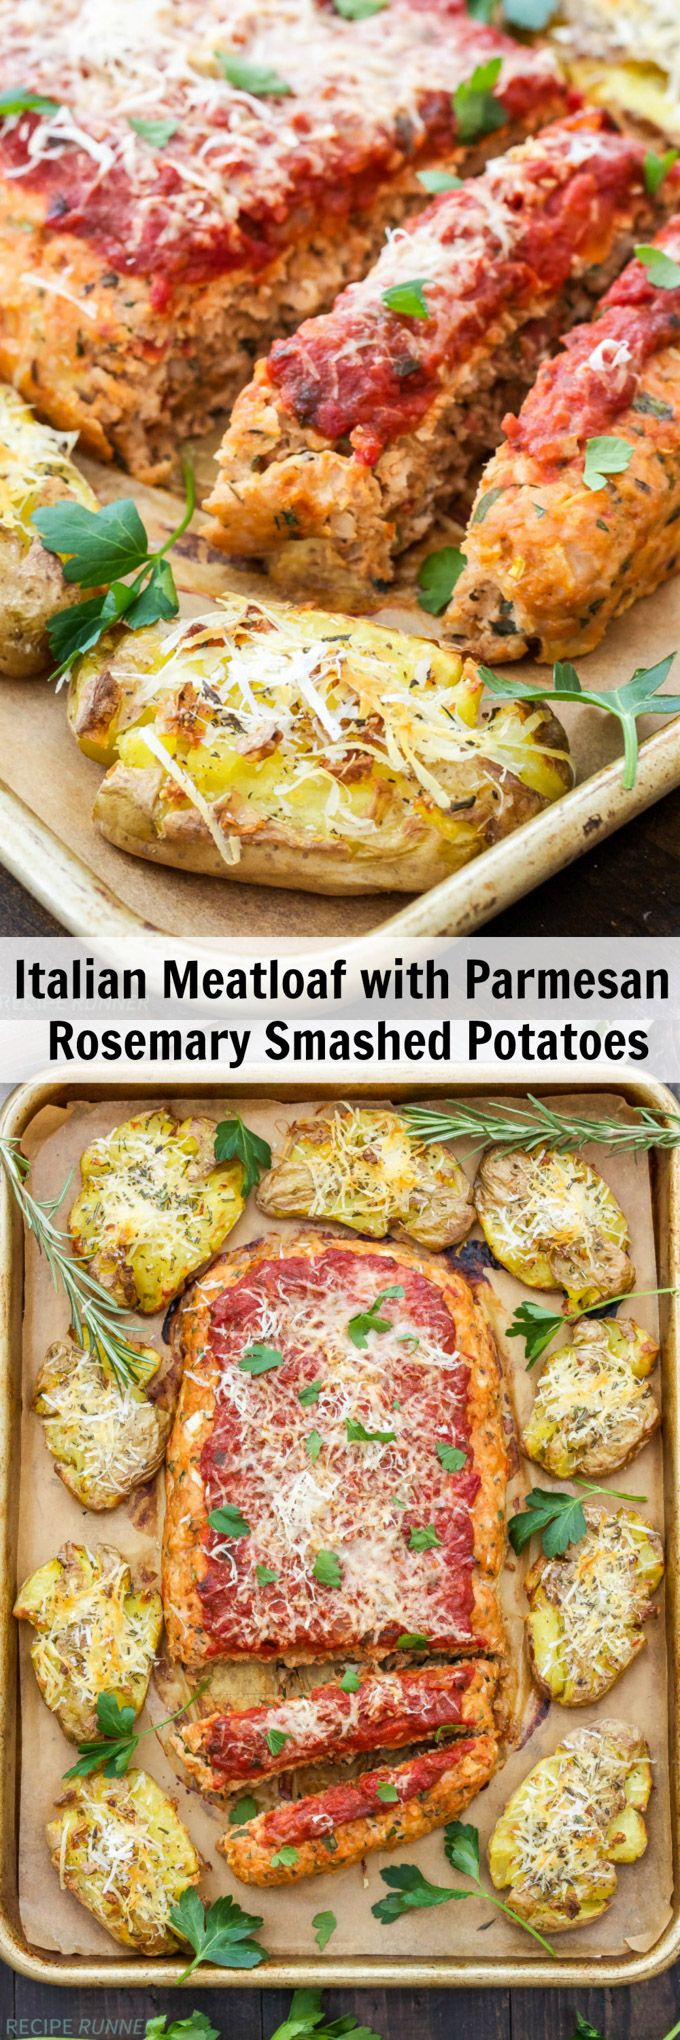 Italian Turkey Meatloaf with Parmesan Rosemary Smashed Potatoes - Recipe Runner